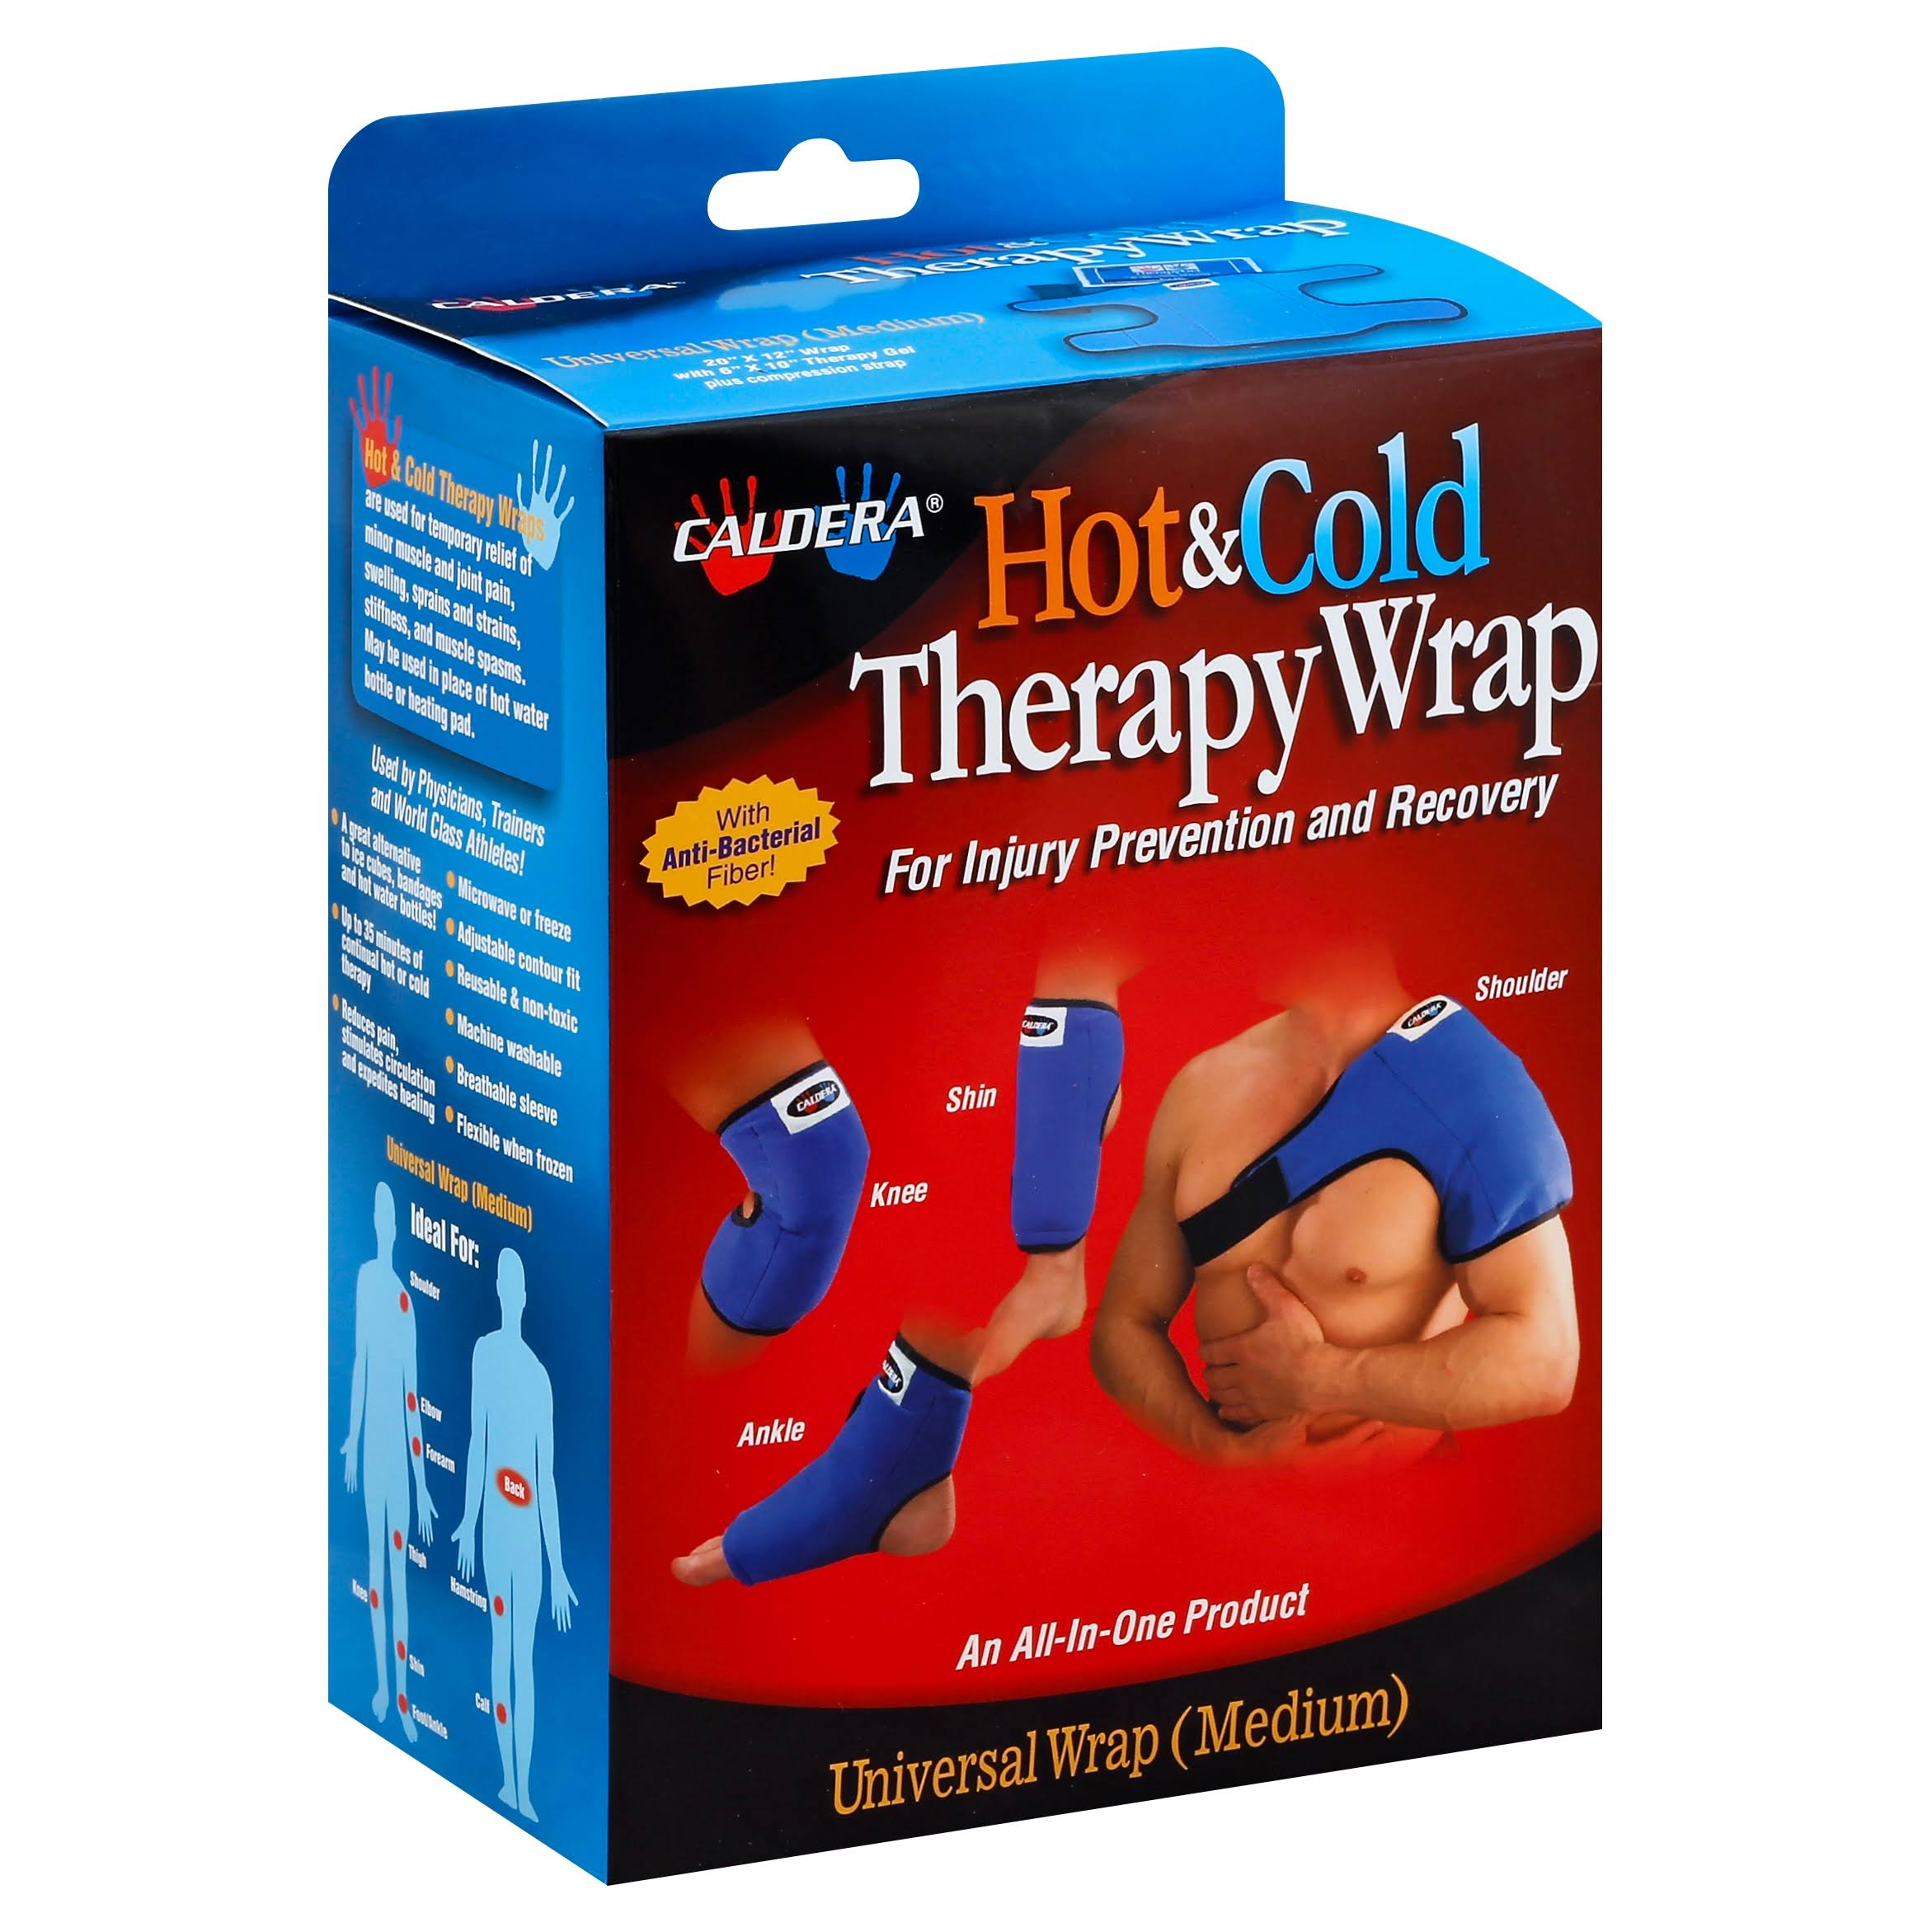 Caldera Universal Hot And Cold Therapy Wrap - Medium